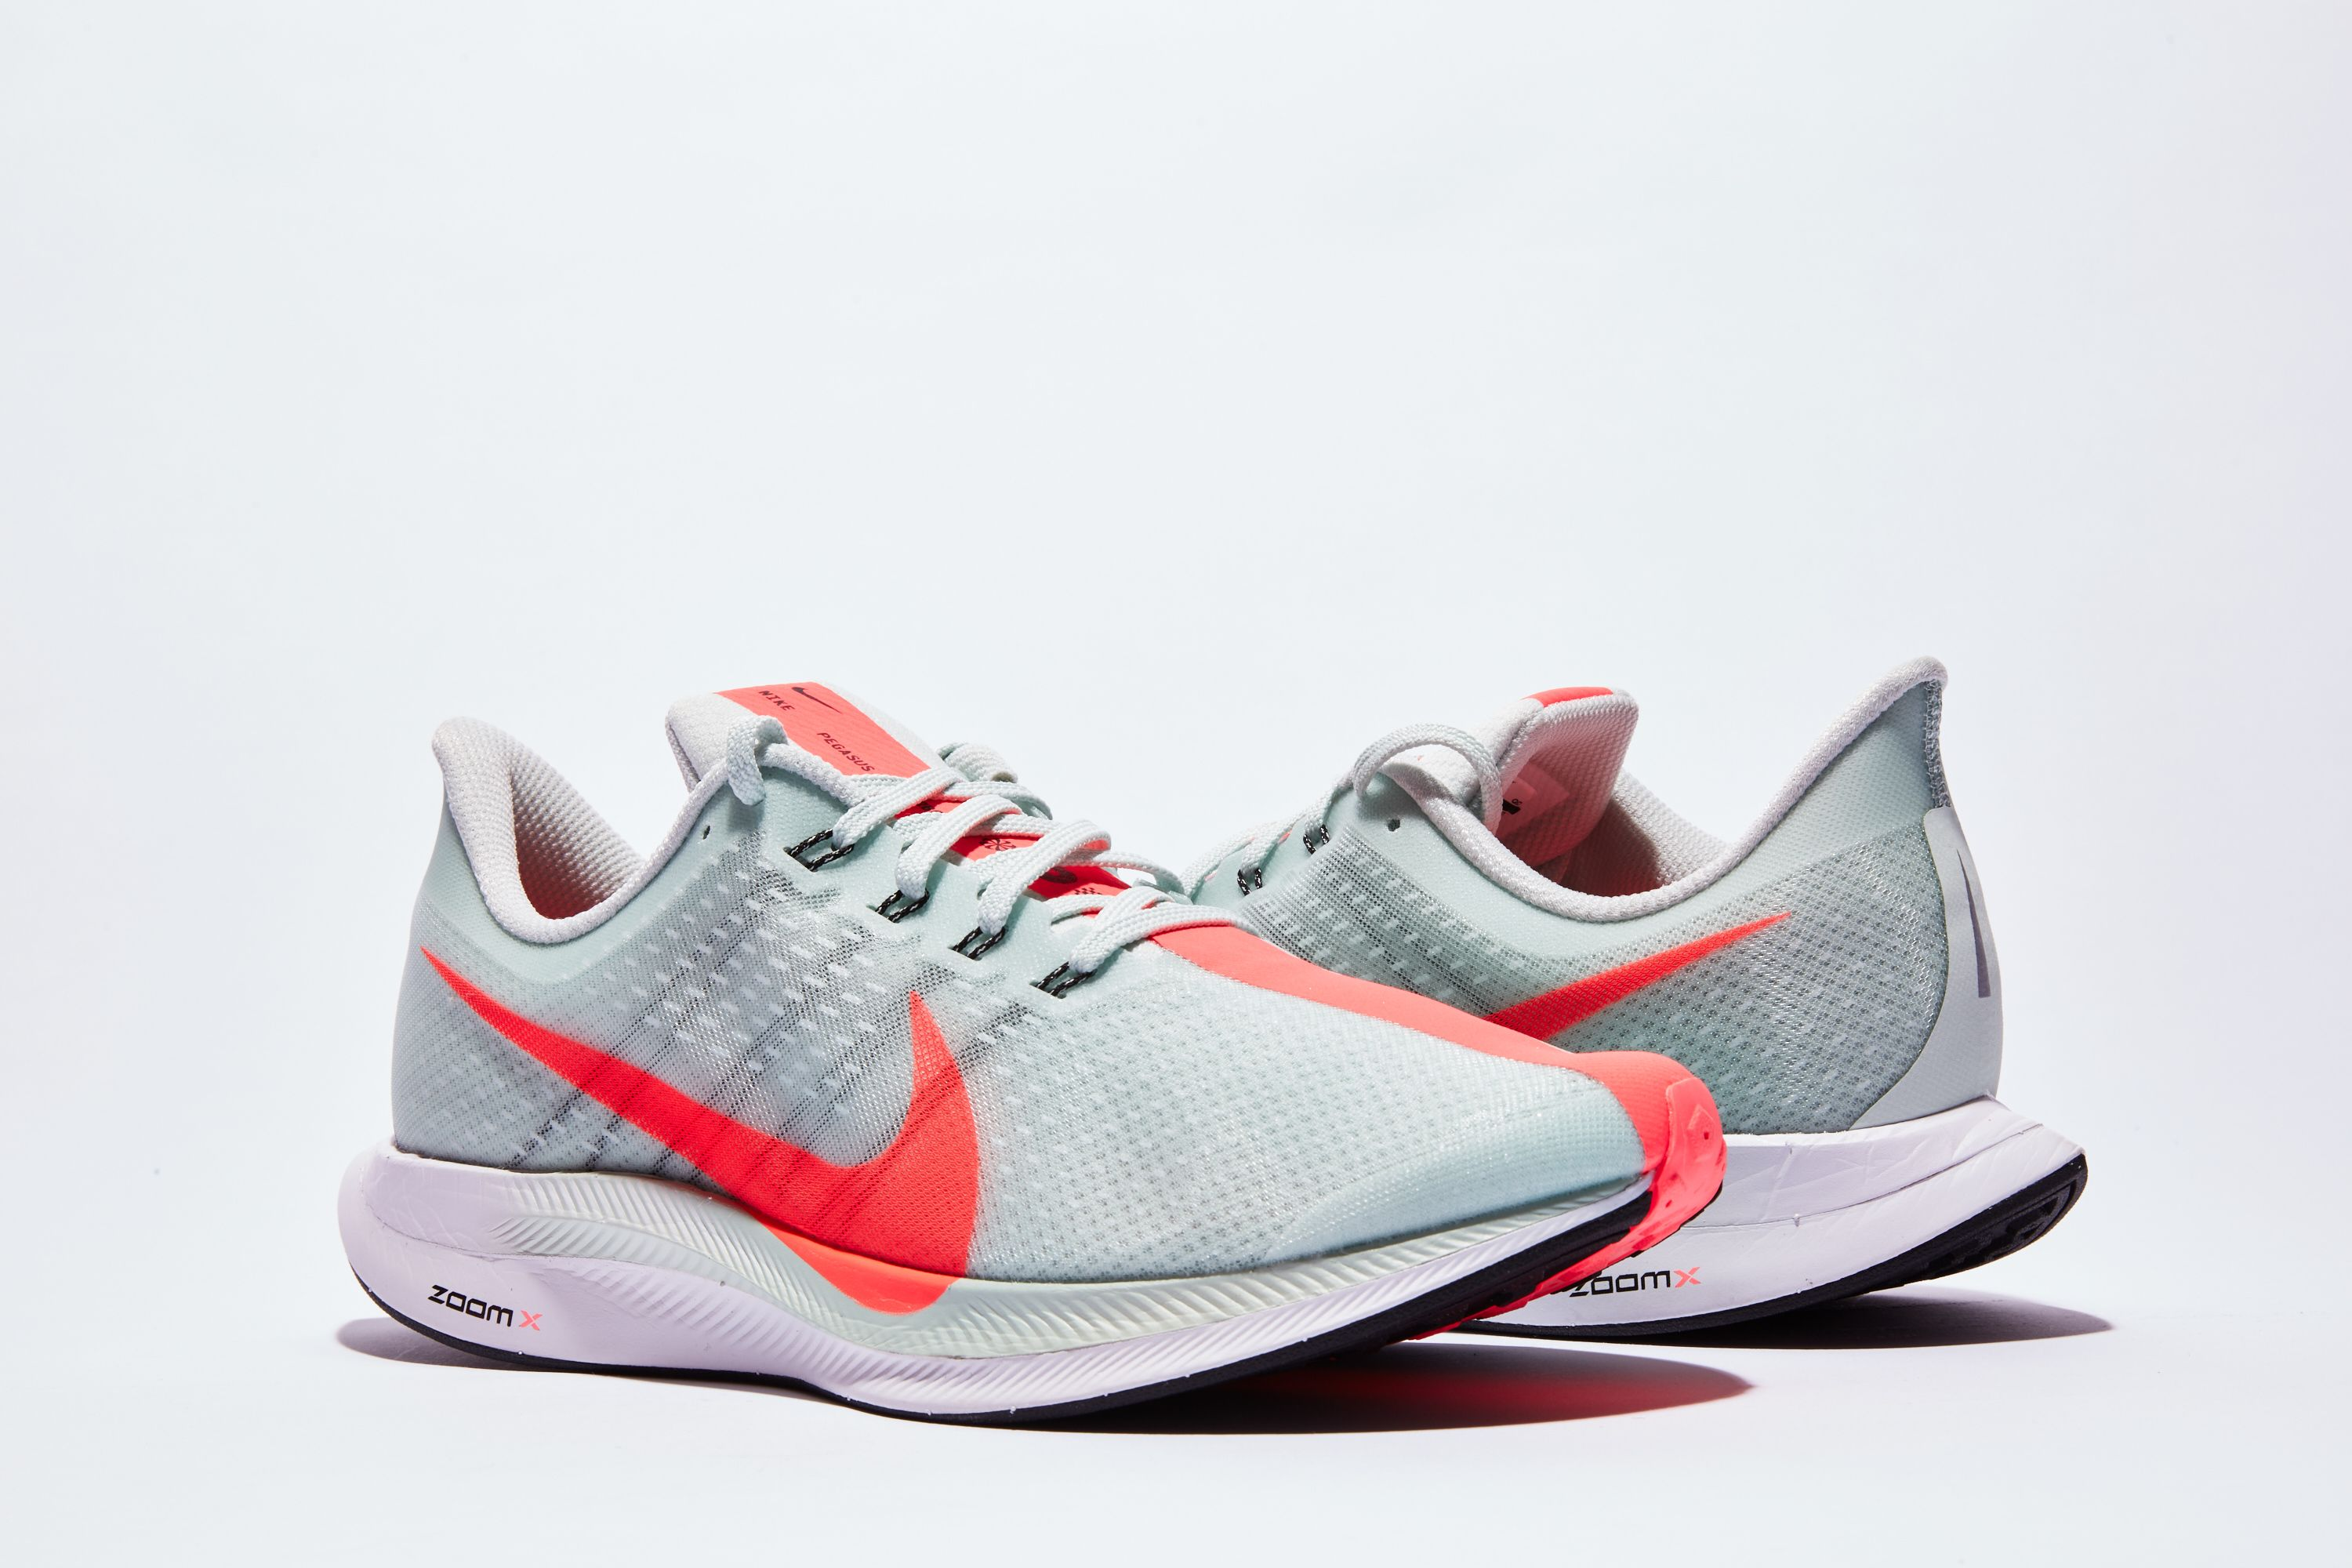 62653b8b6b8 Nike Zoom Pegasus 35 Turbo - Running Shoes for Speed